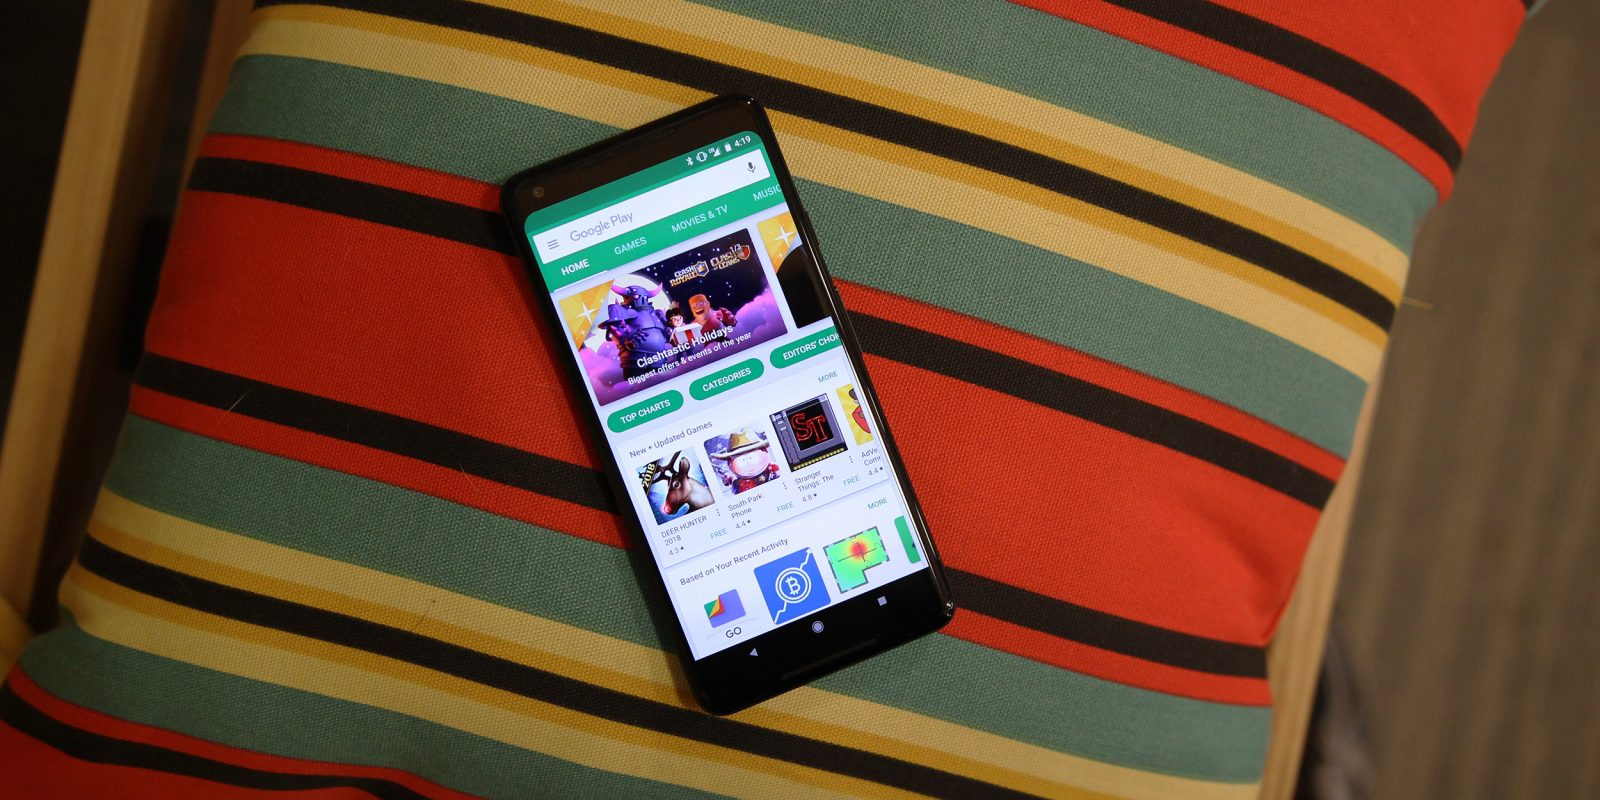 Google Play's redesigned in-app purchase UI is more reachable, rolling out now